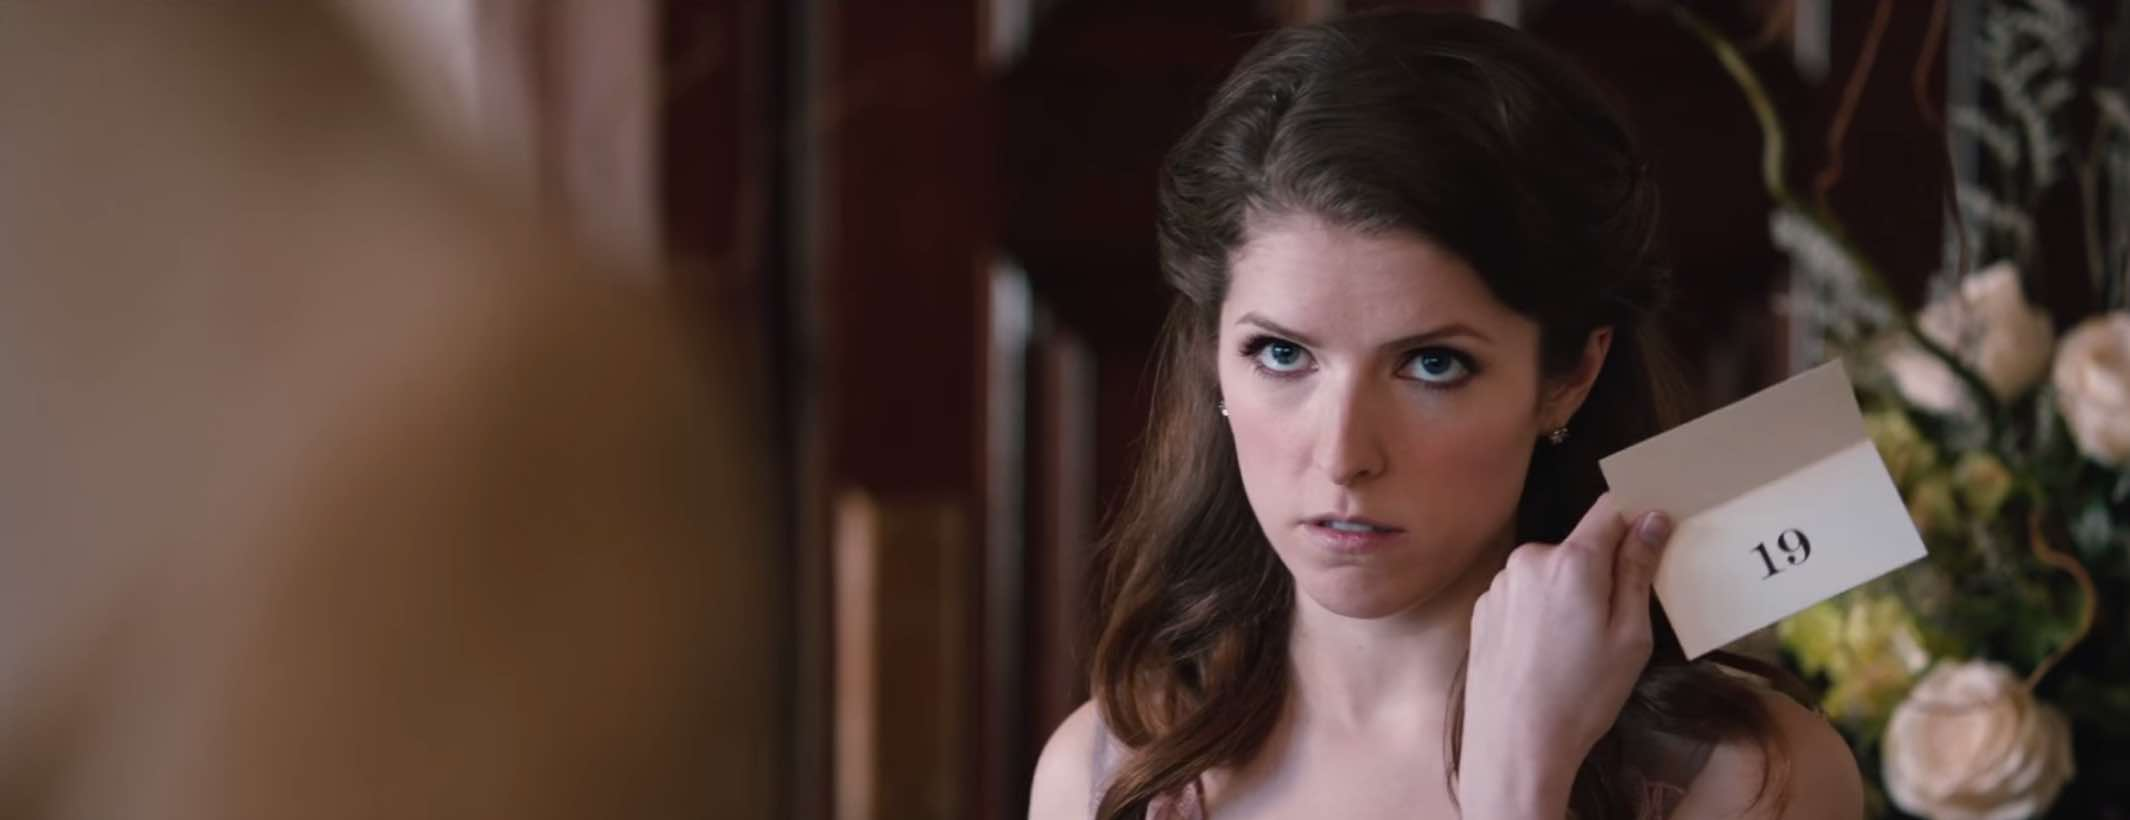 Watch Anna Kendrick, Lisa Kudrow and Stephen Merchant in first 'Table 19' trailer